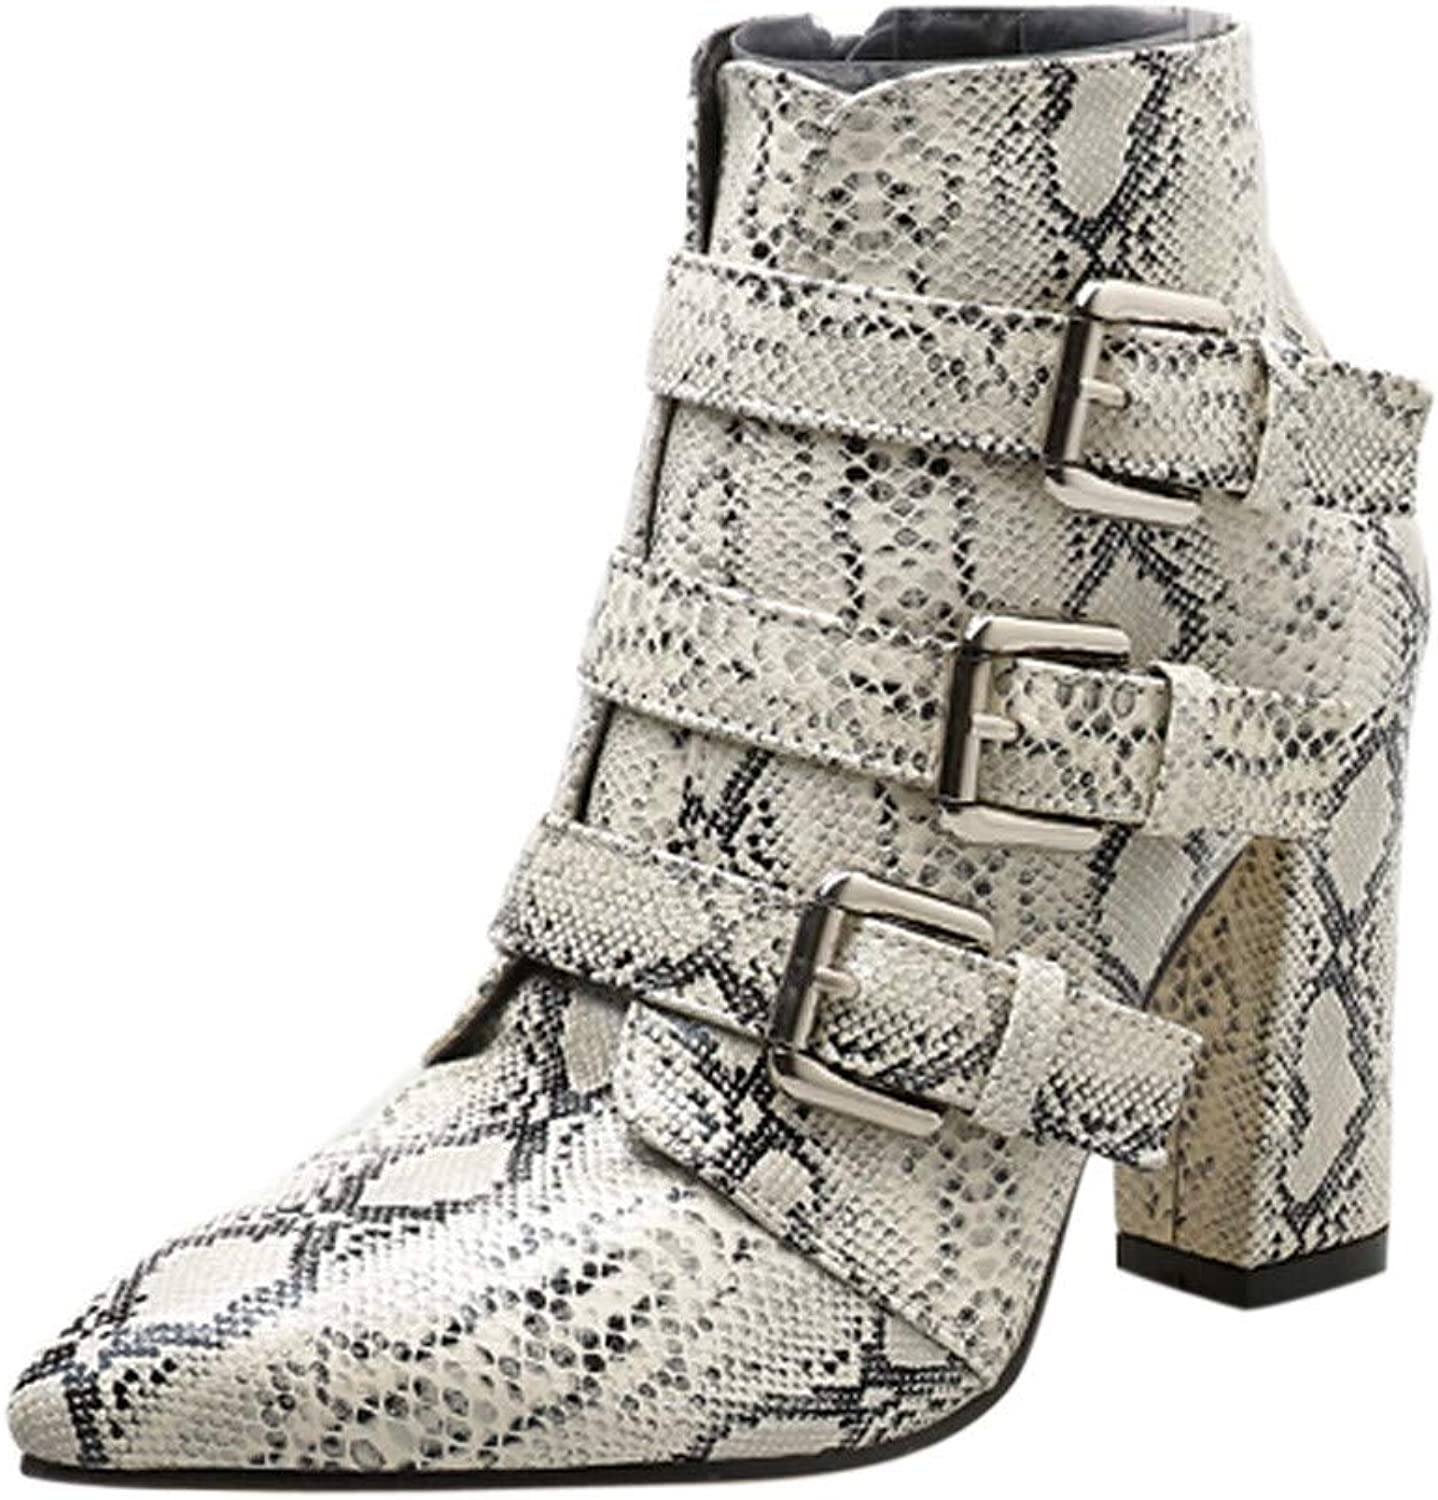 OWMEOT Women's Suede Waterproof Lace Up Winter High Top Snow Boots